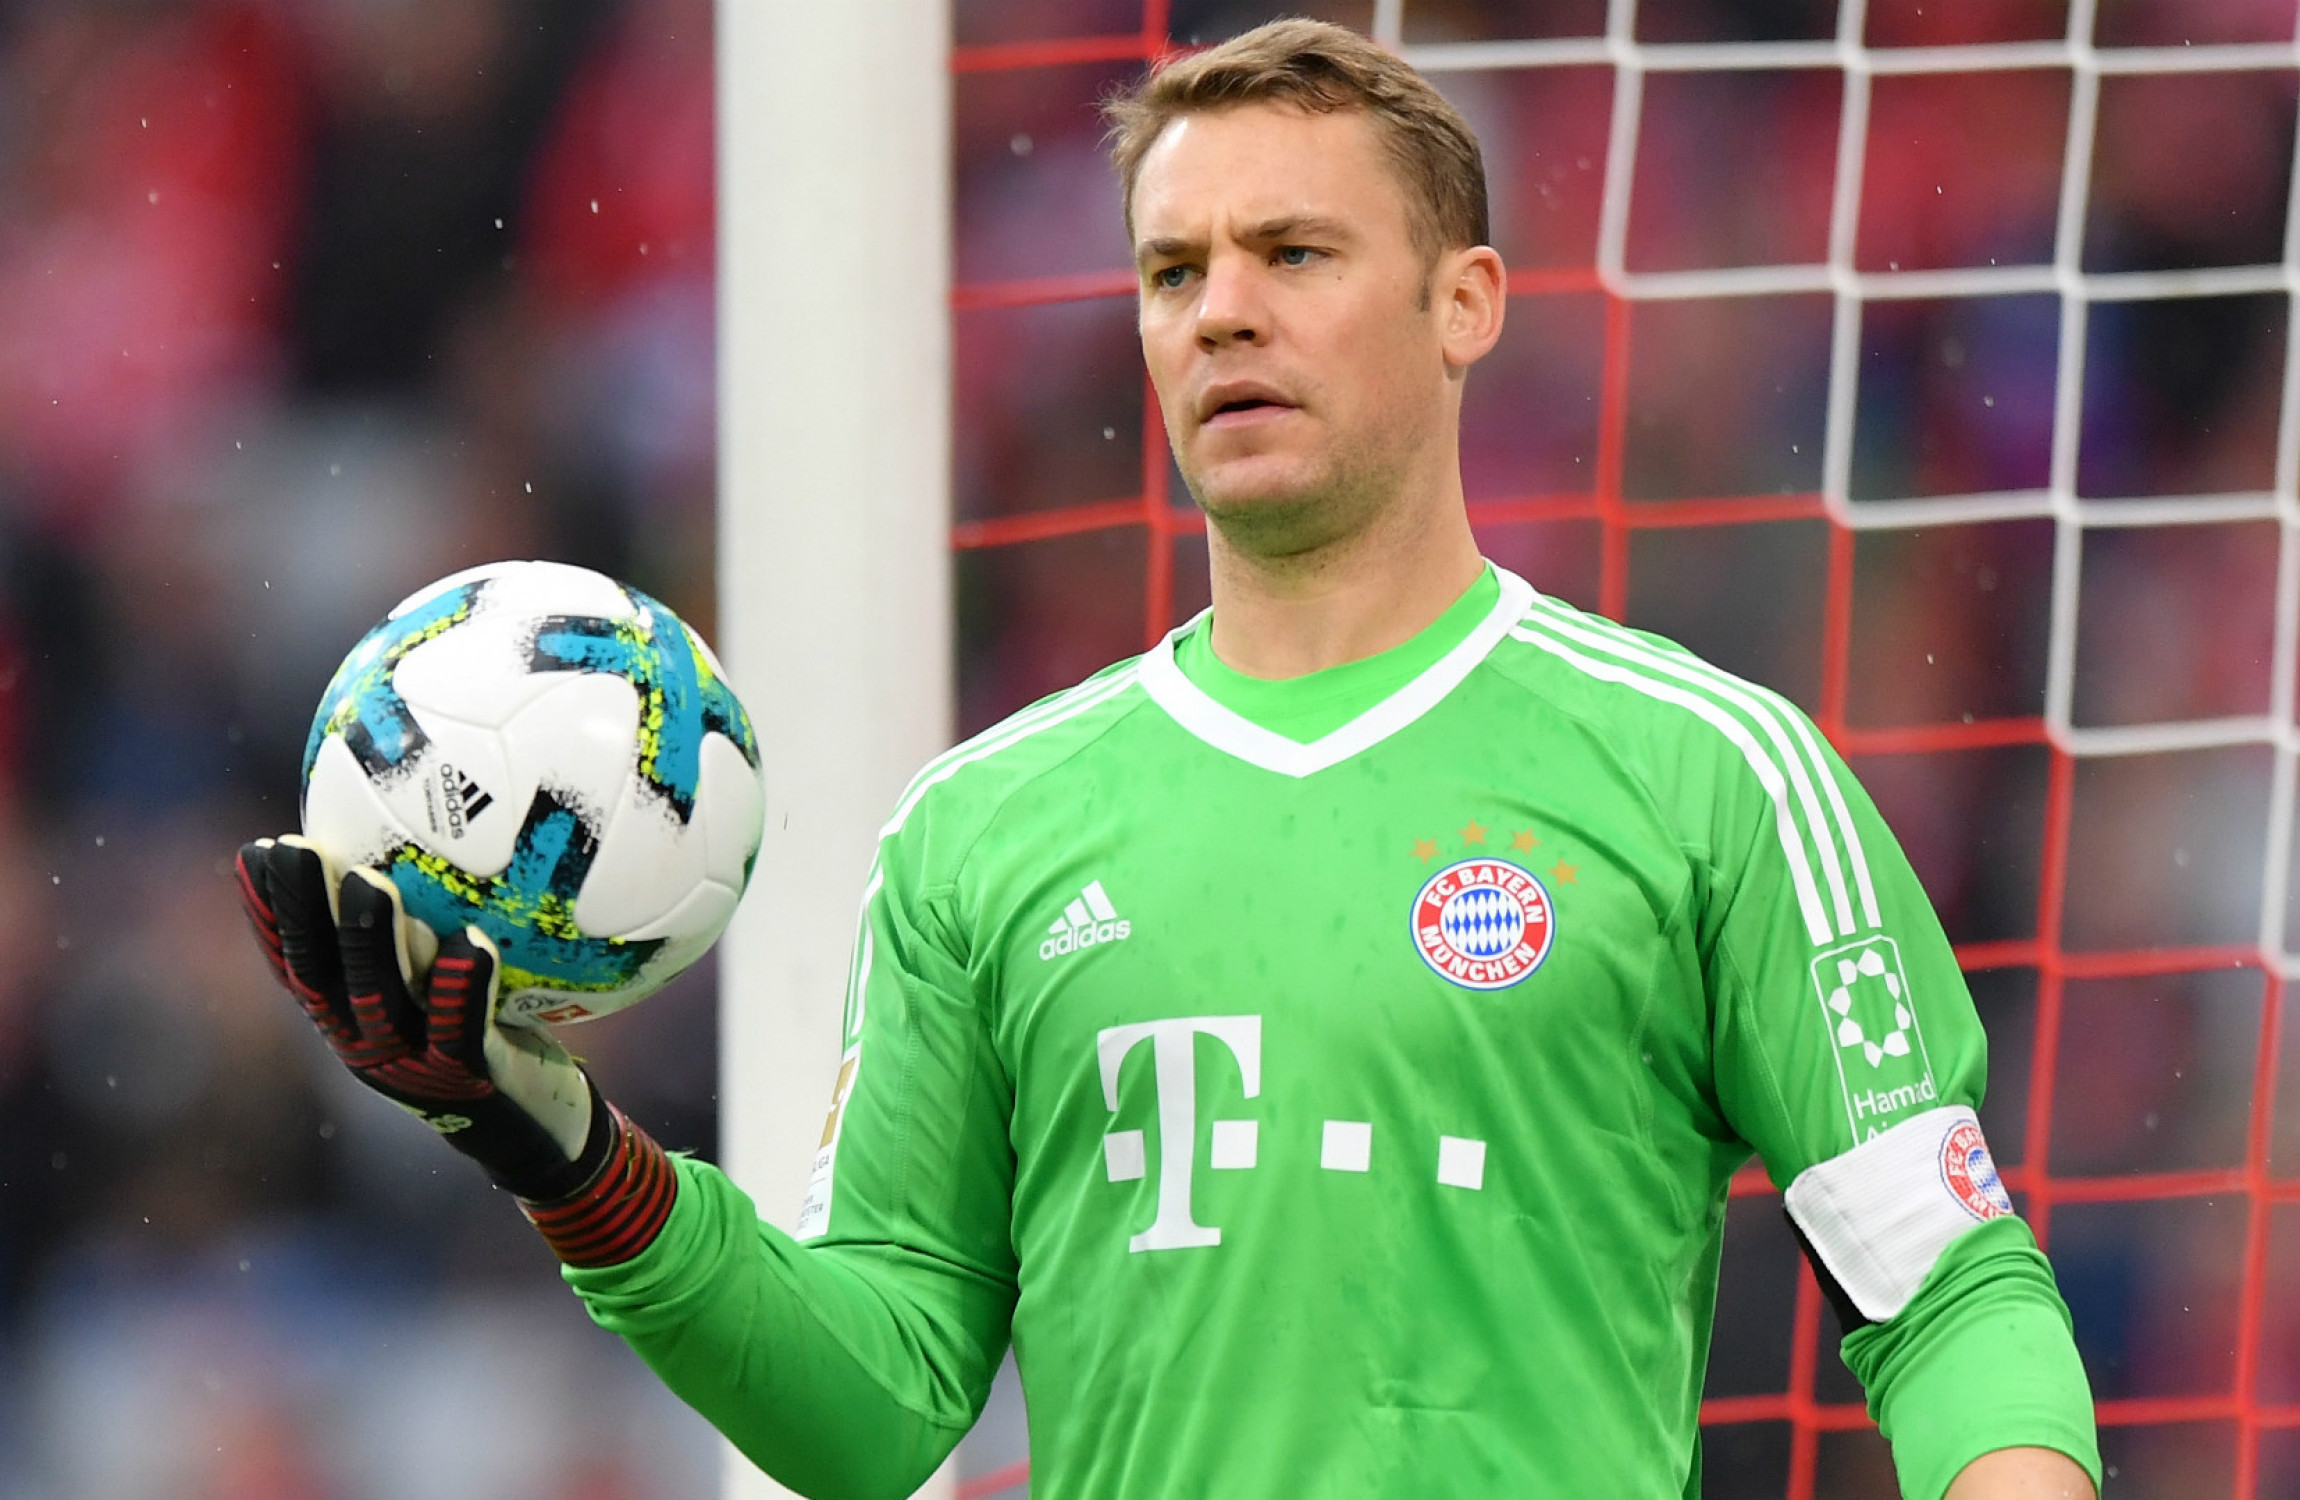 Bayern Munich goalkeeper Manuel Neuer ruled out until 2018 with